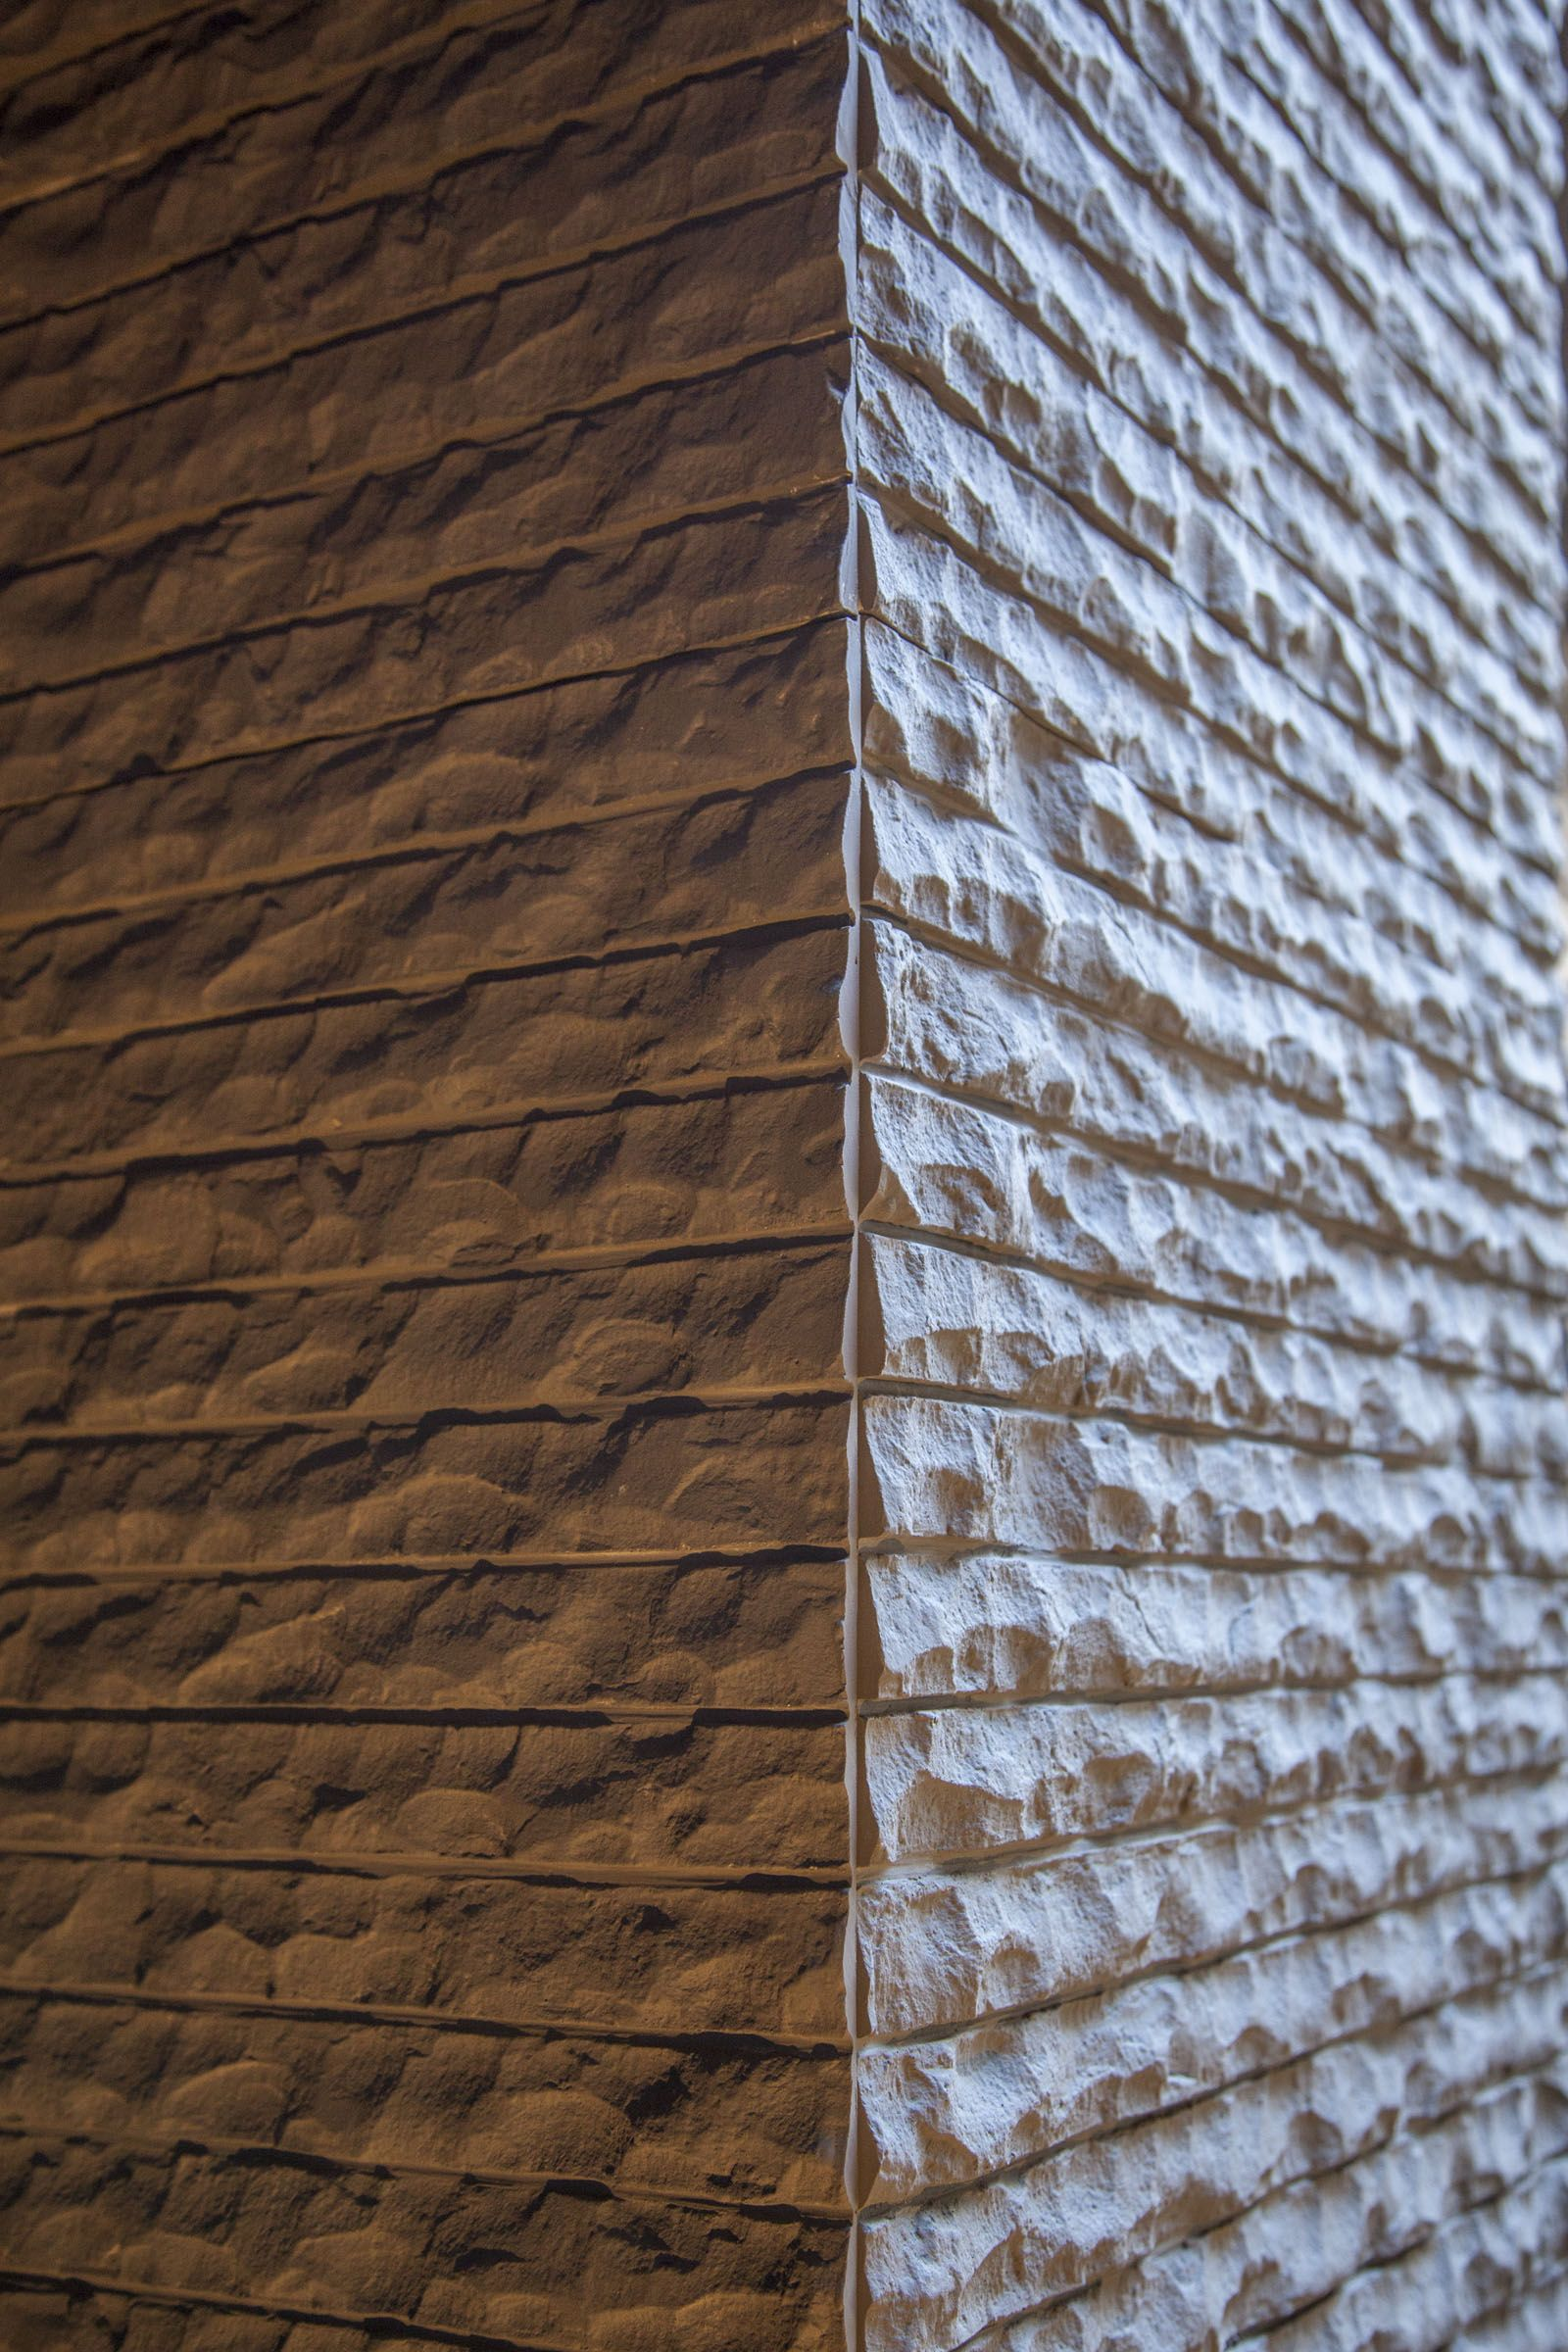 Decorative Wall Panels For Interior And Exterior Design Projects 3d Wall Panels That Are